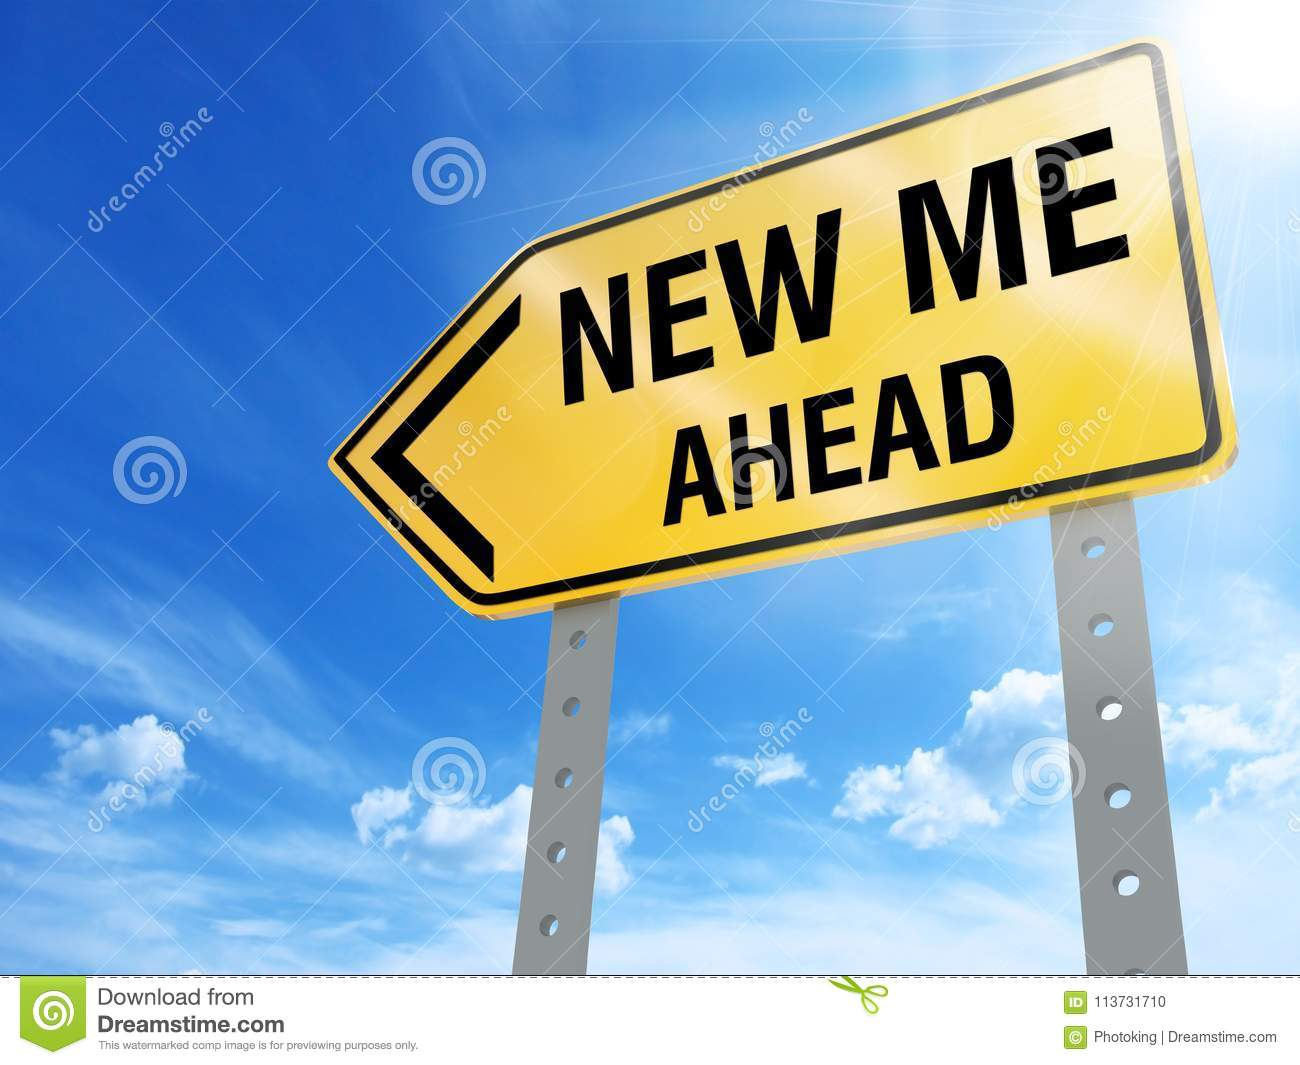 New me ahead sign